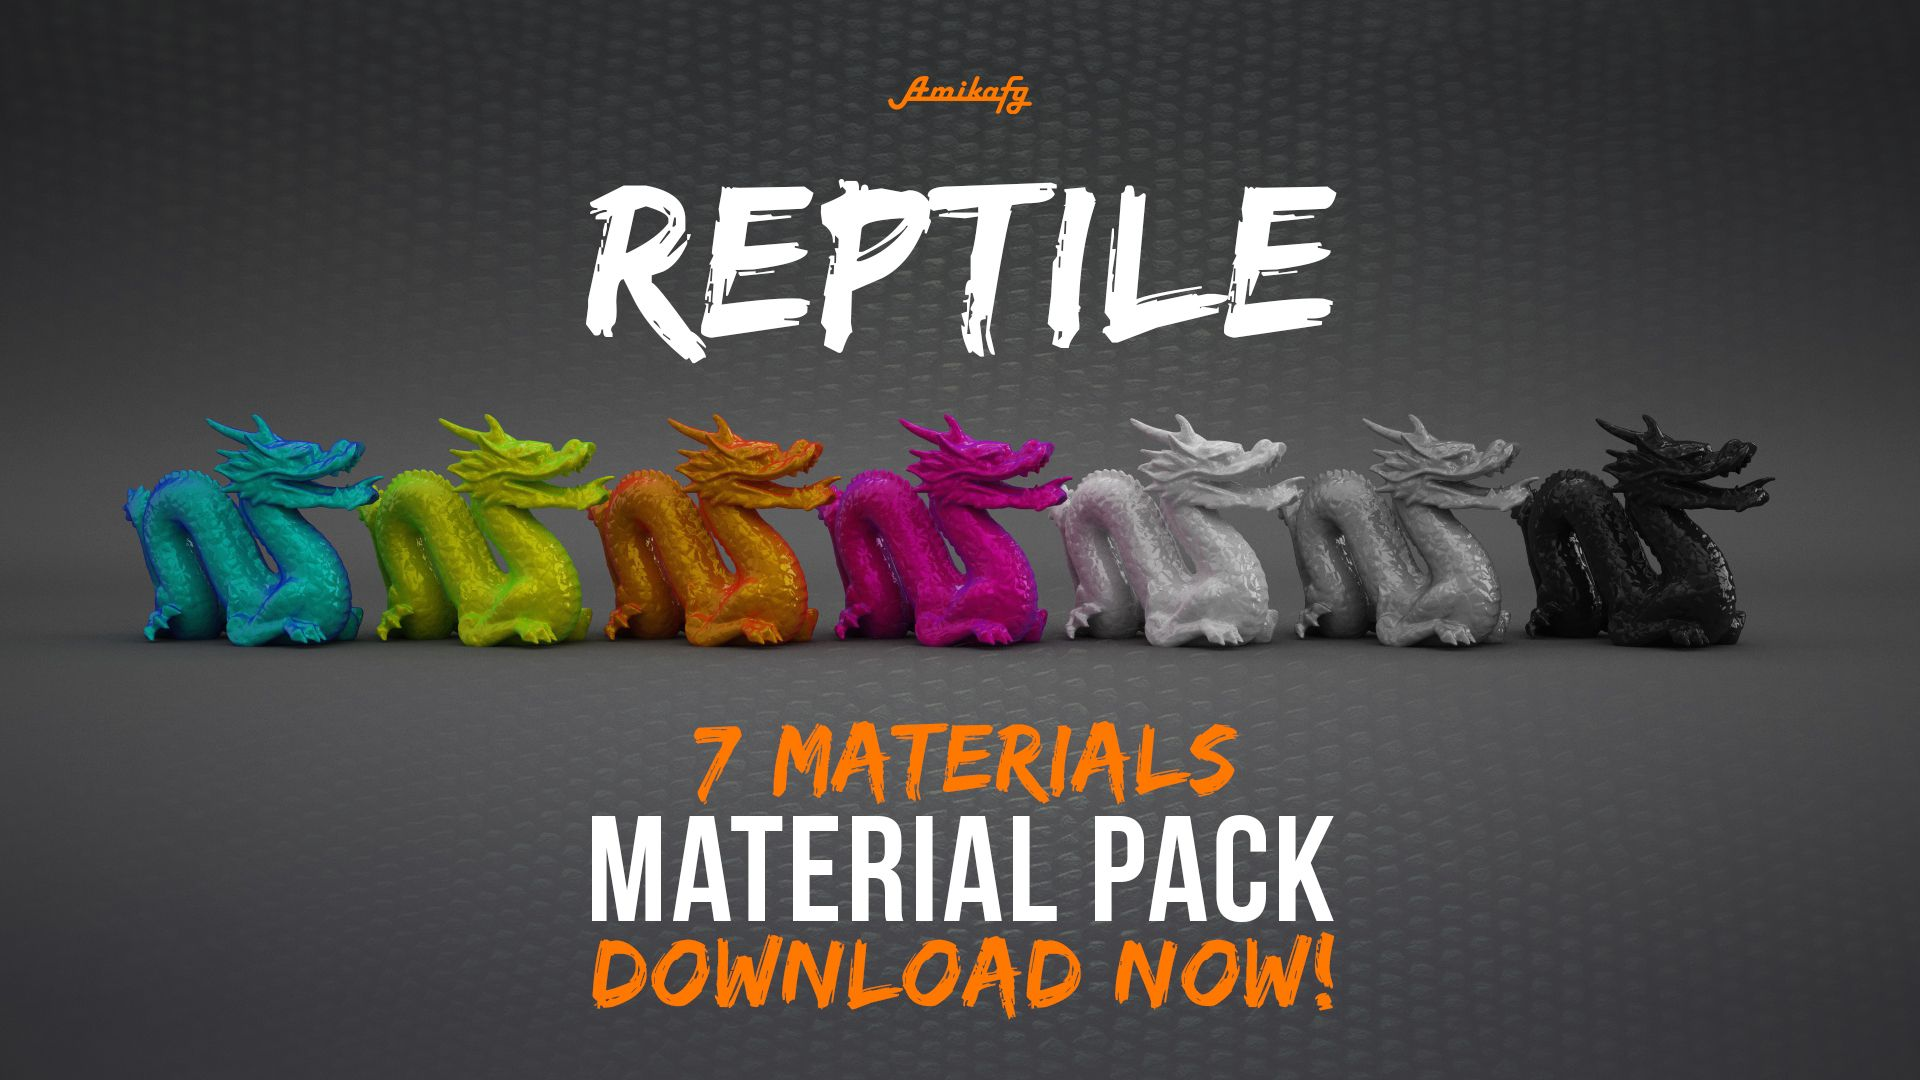 Cinema 4D Reptile Materials Pack (Free Download) by Amikafy